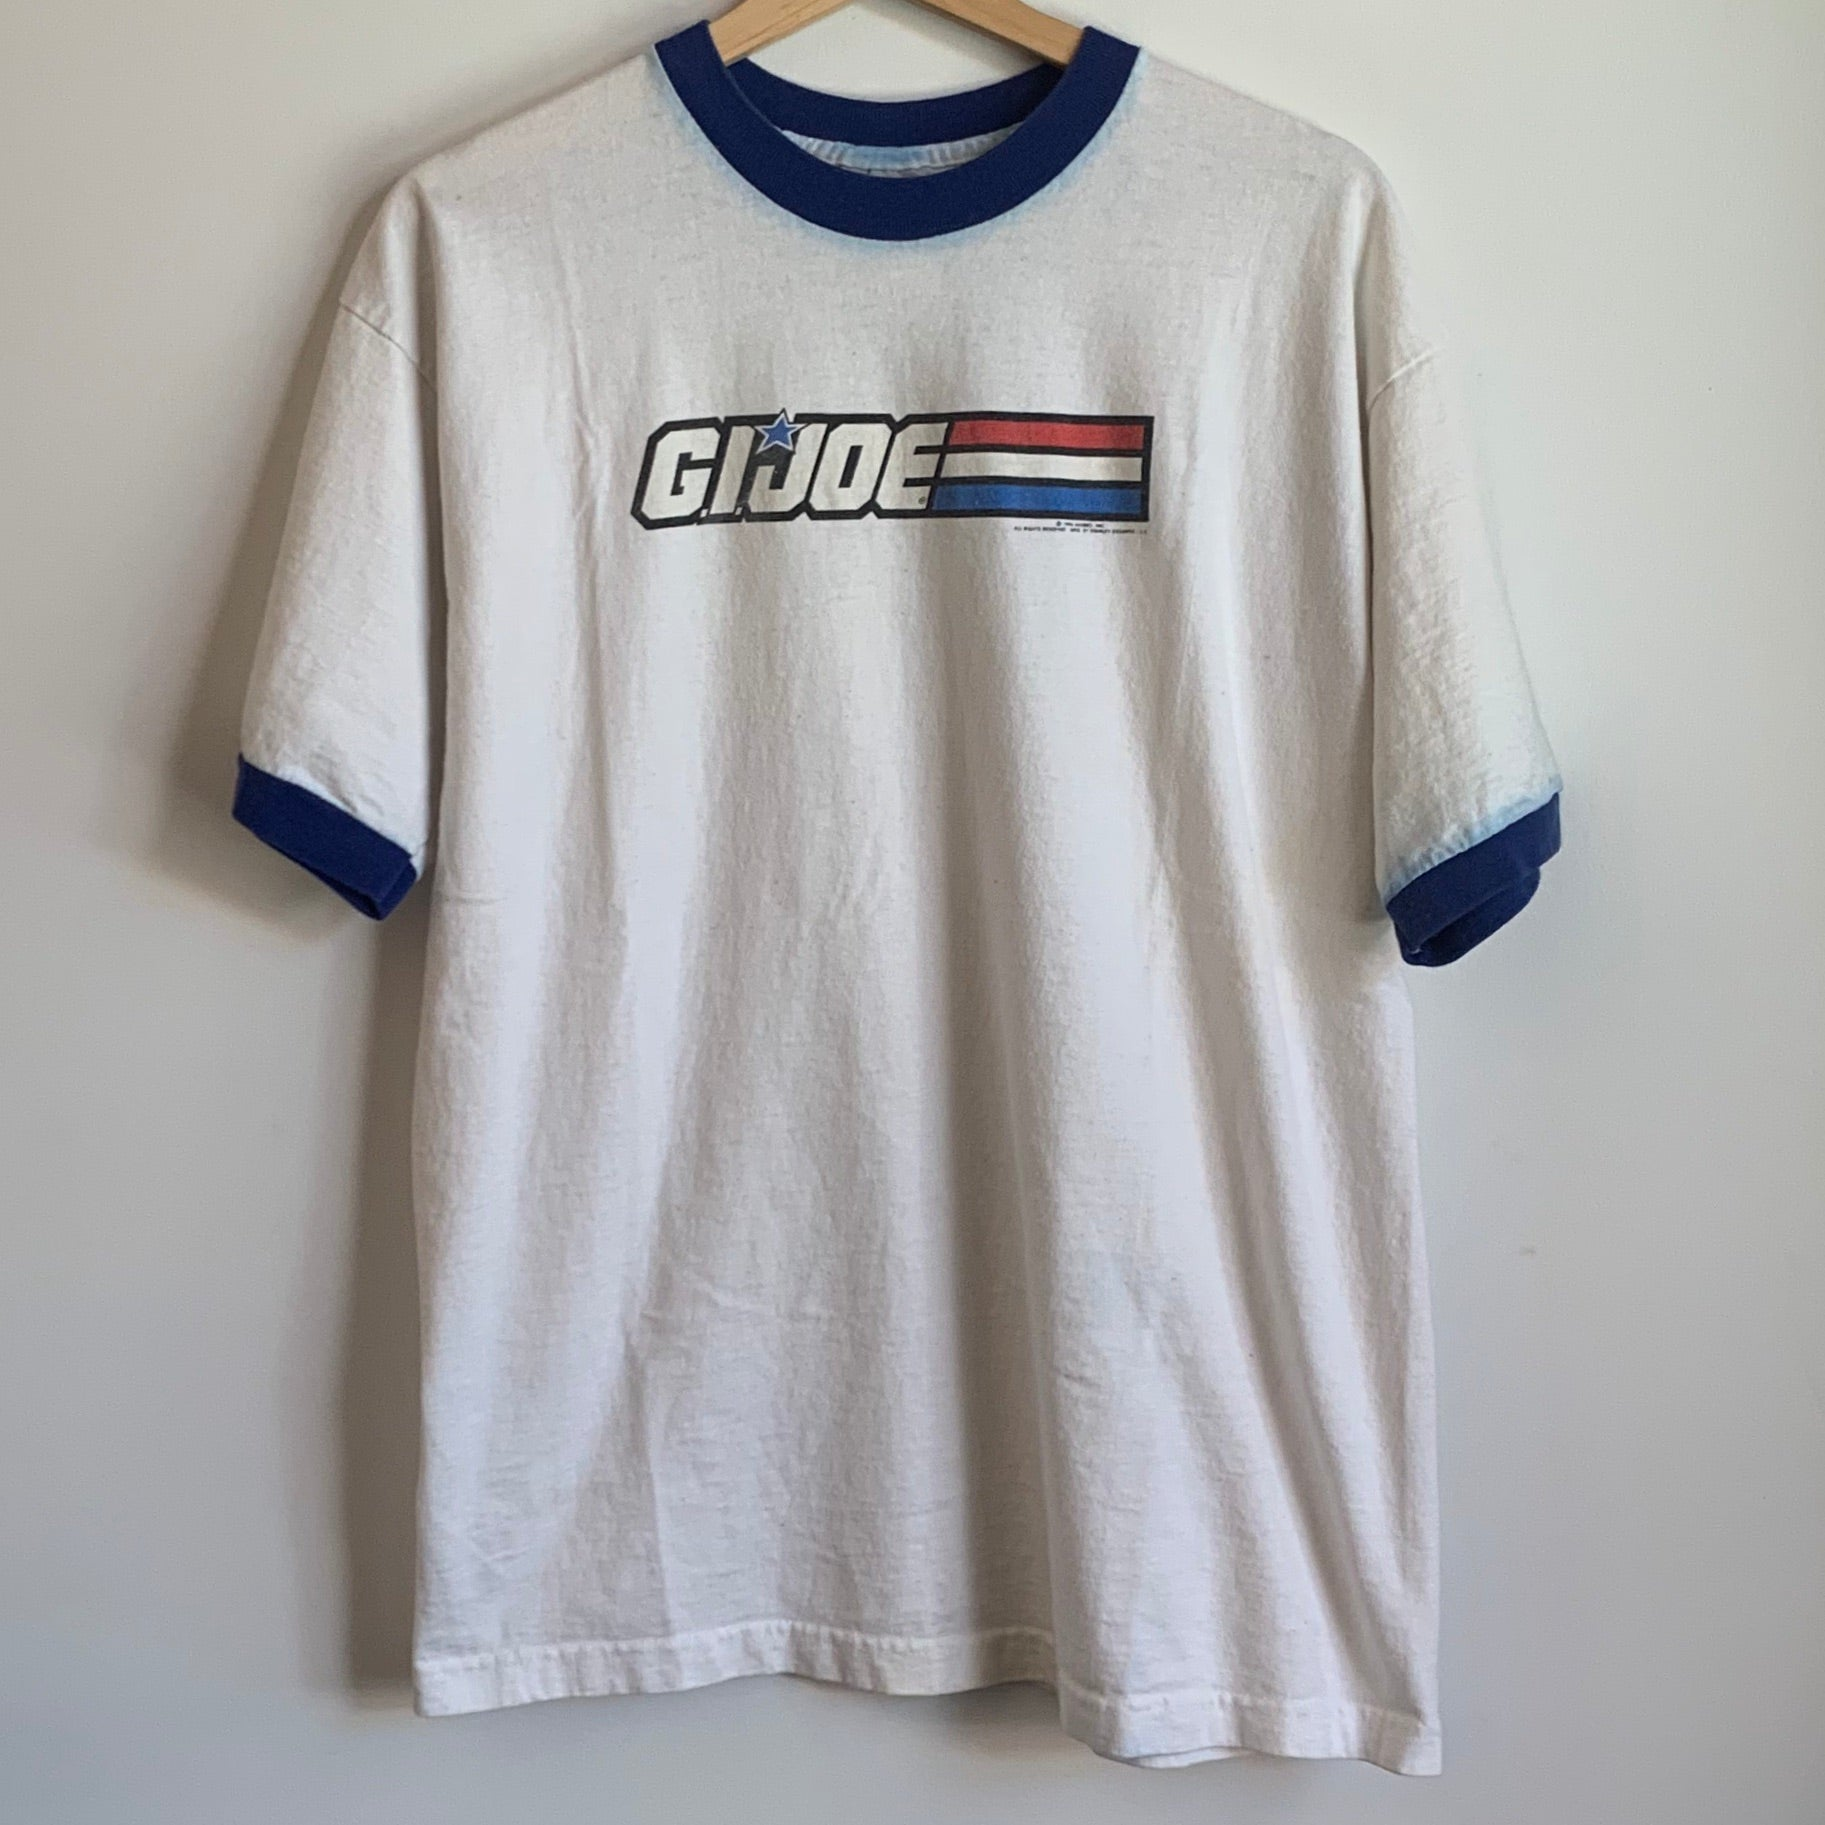 1996 G.I. Joe White Tee Shirt